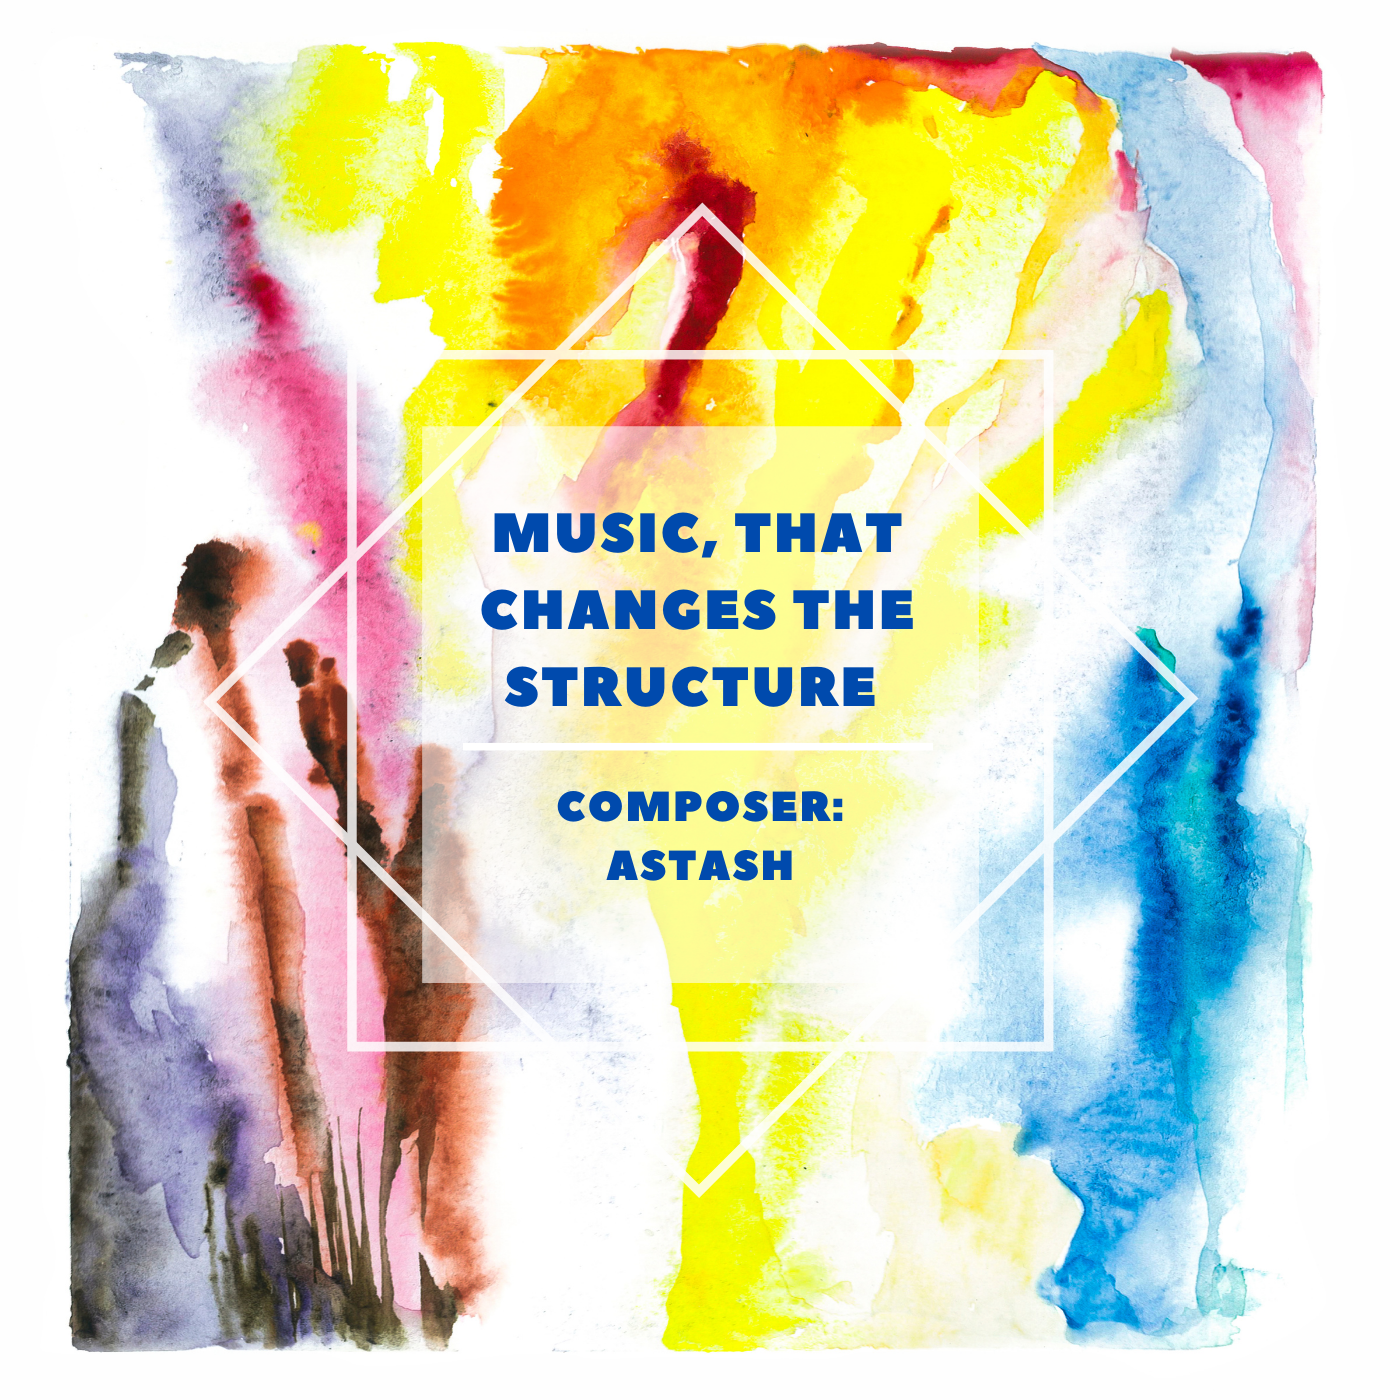 Music that changes the structure